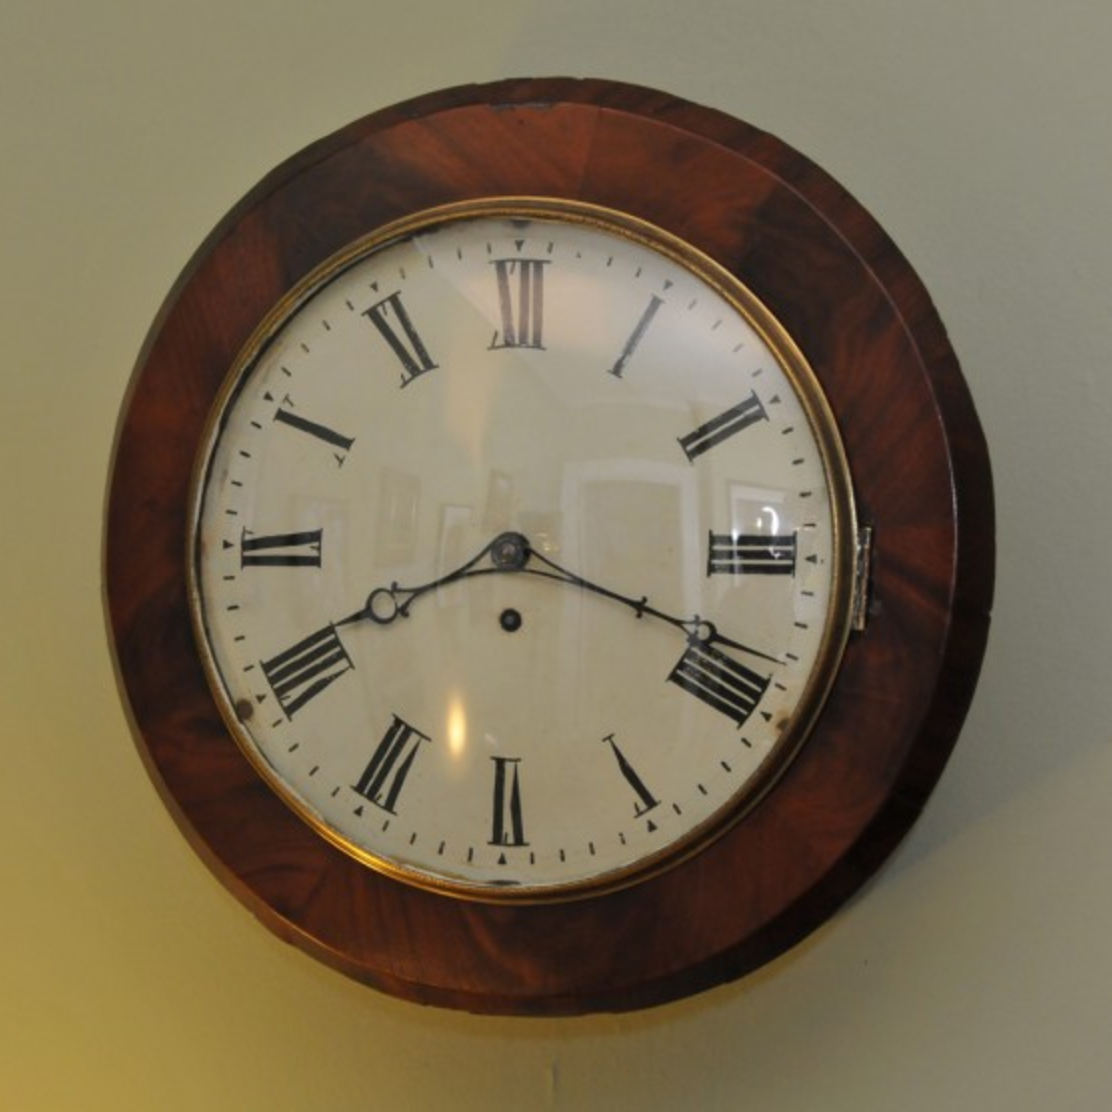 English Fusee Wall Clock, Circa: 1890-1905